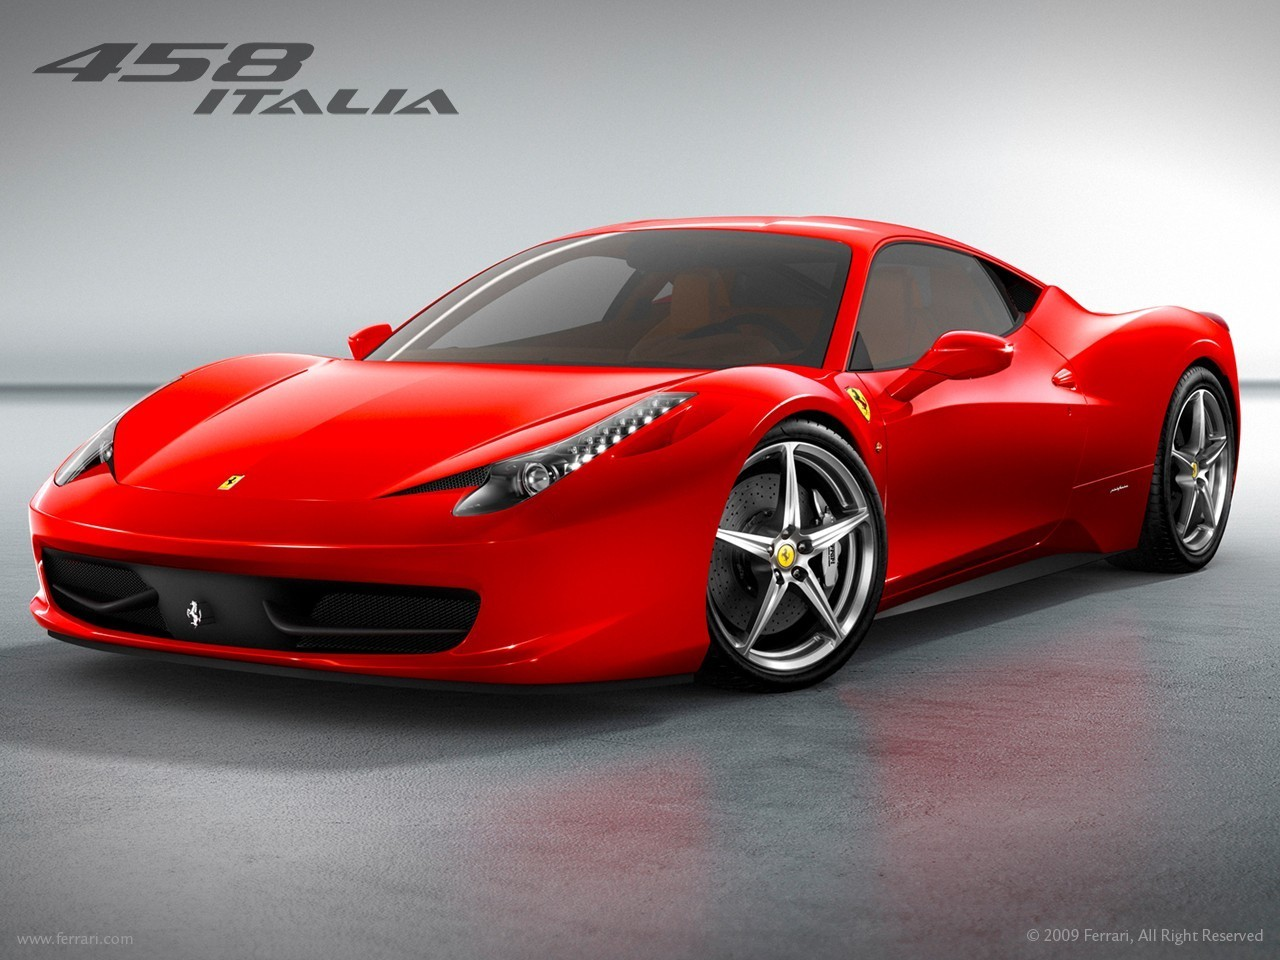 Images Of Cars farrari sports cars